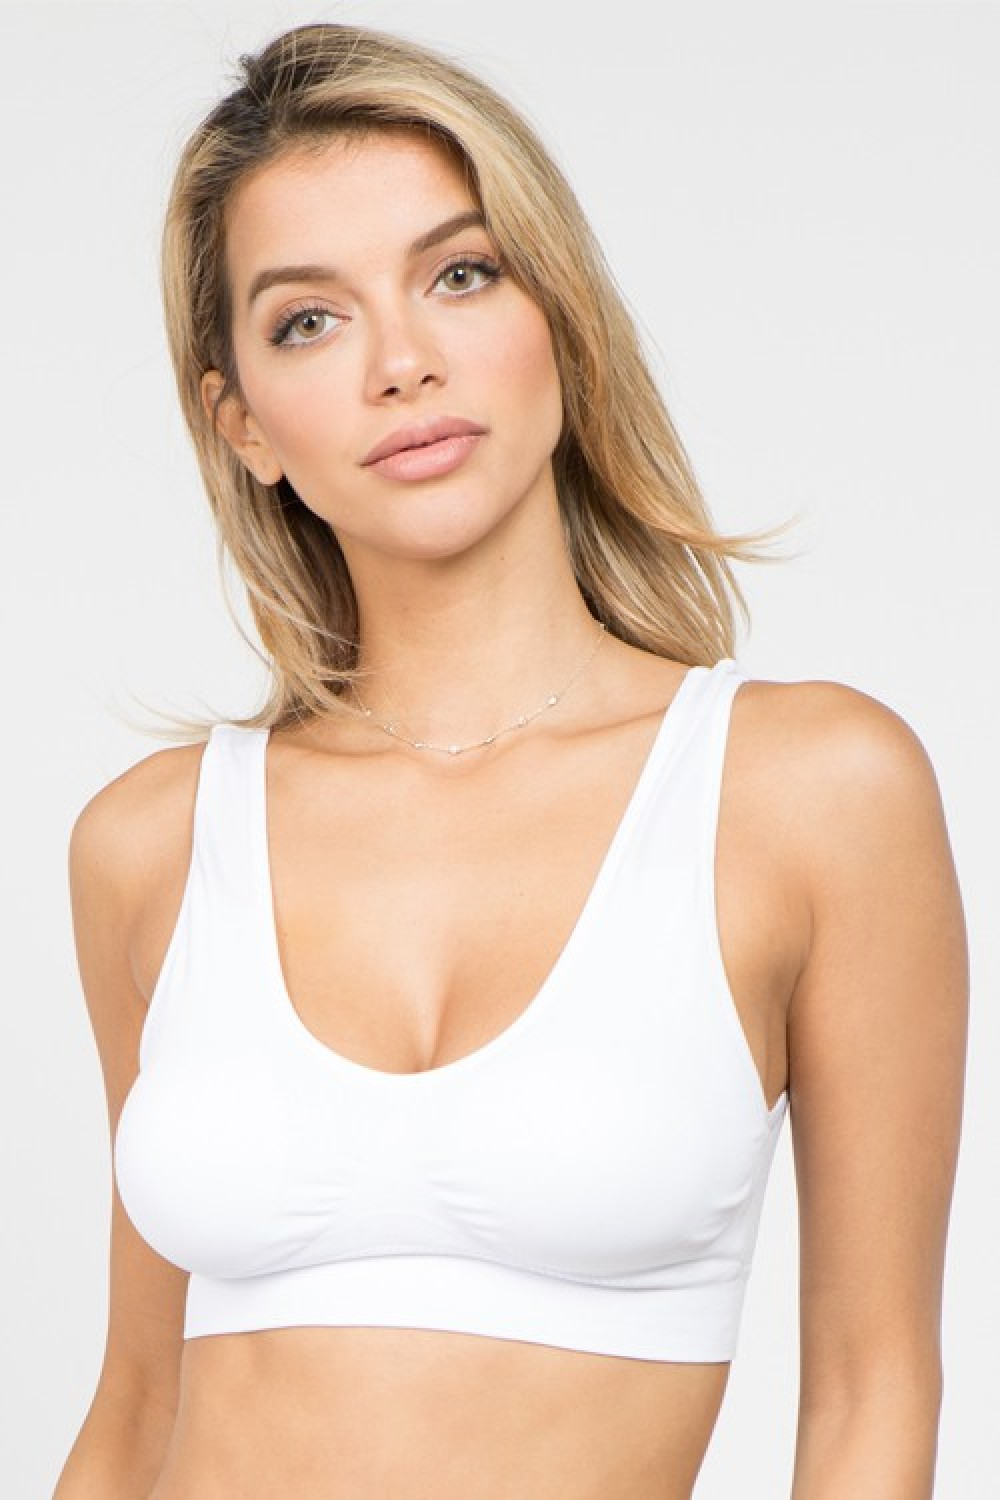 PLUS-BS3009<br/>Silicone Breast Lift Pasties